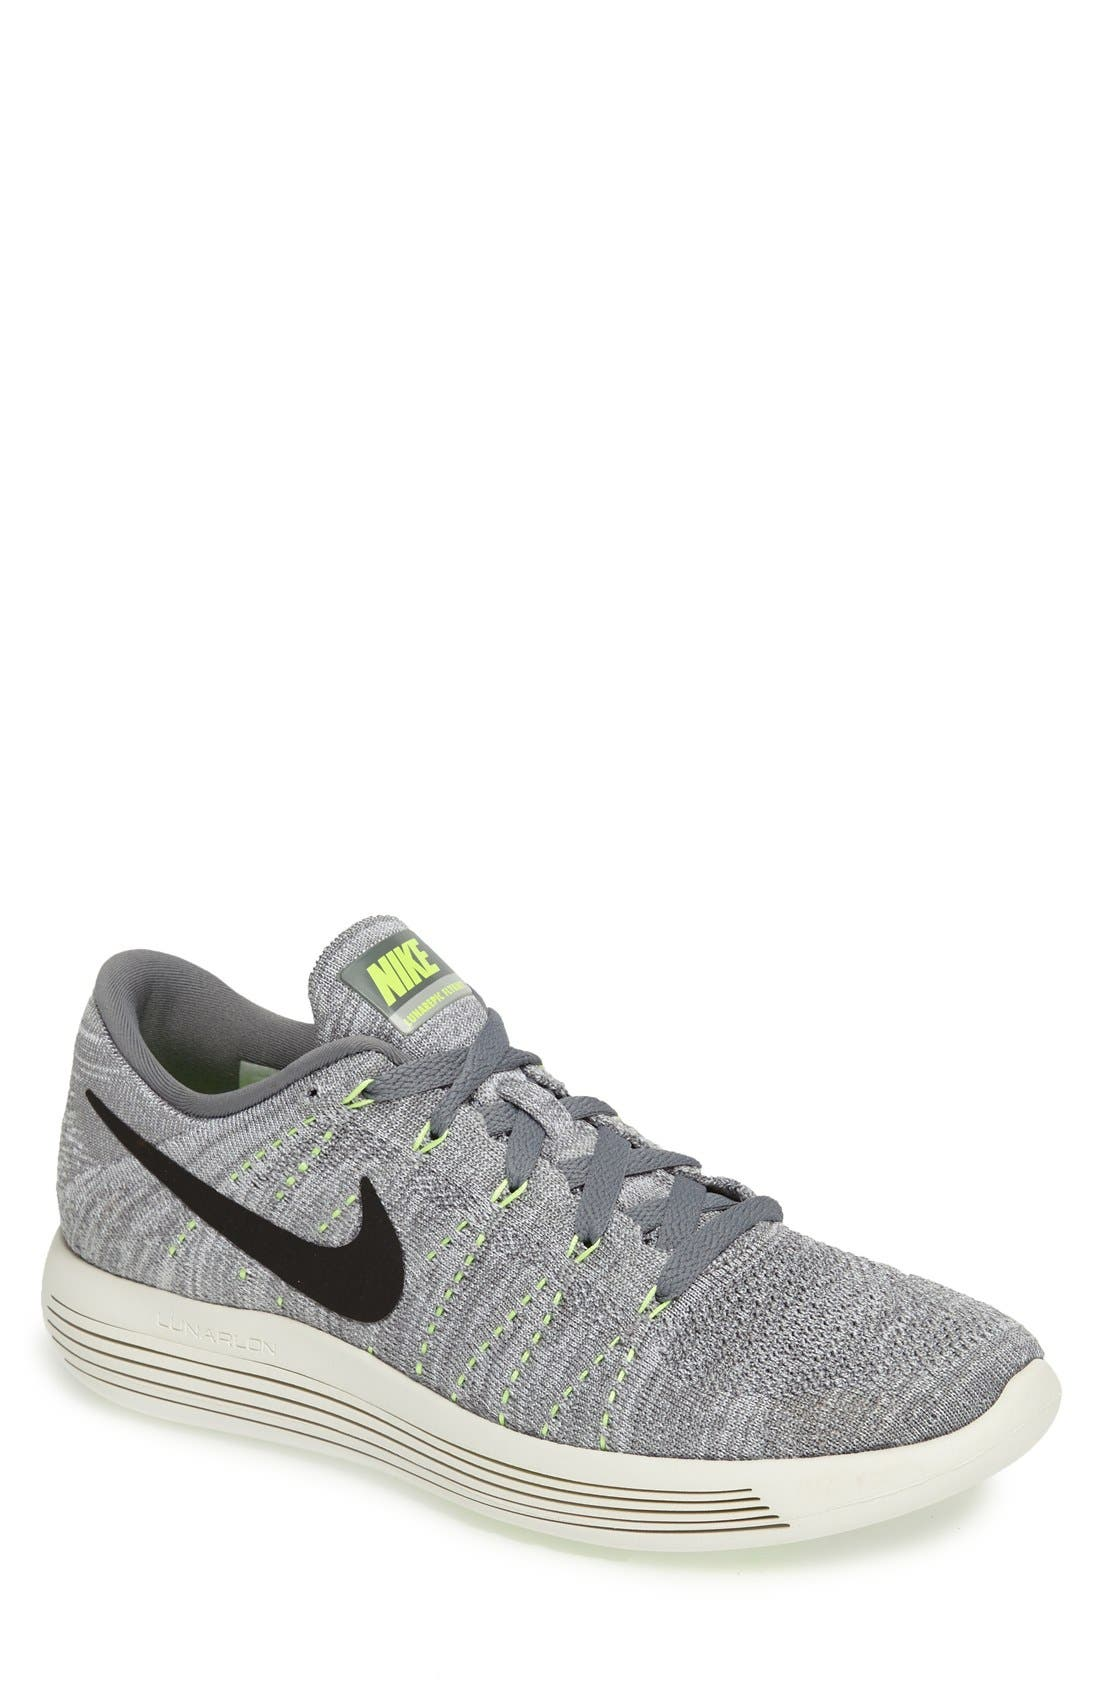 Alternate Image 1 Selected - Nike 'LunarEpic Low Flyknit' Running Shoe (Men)